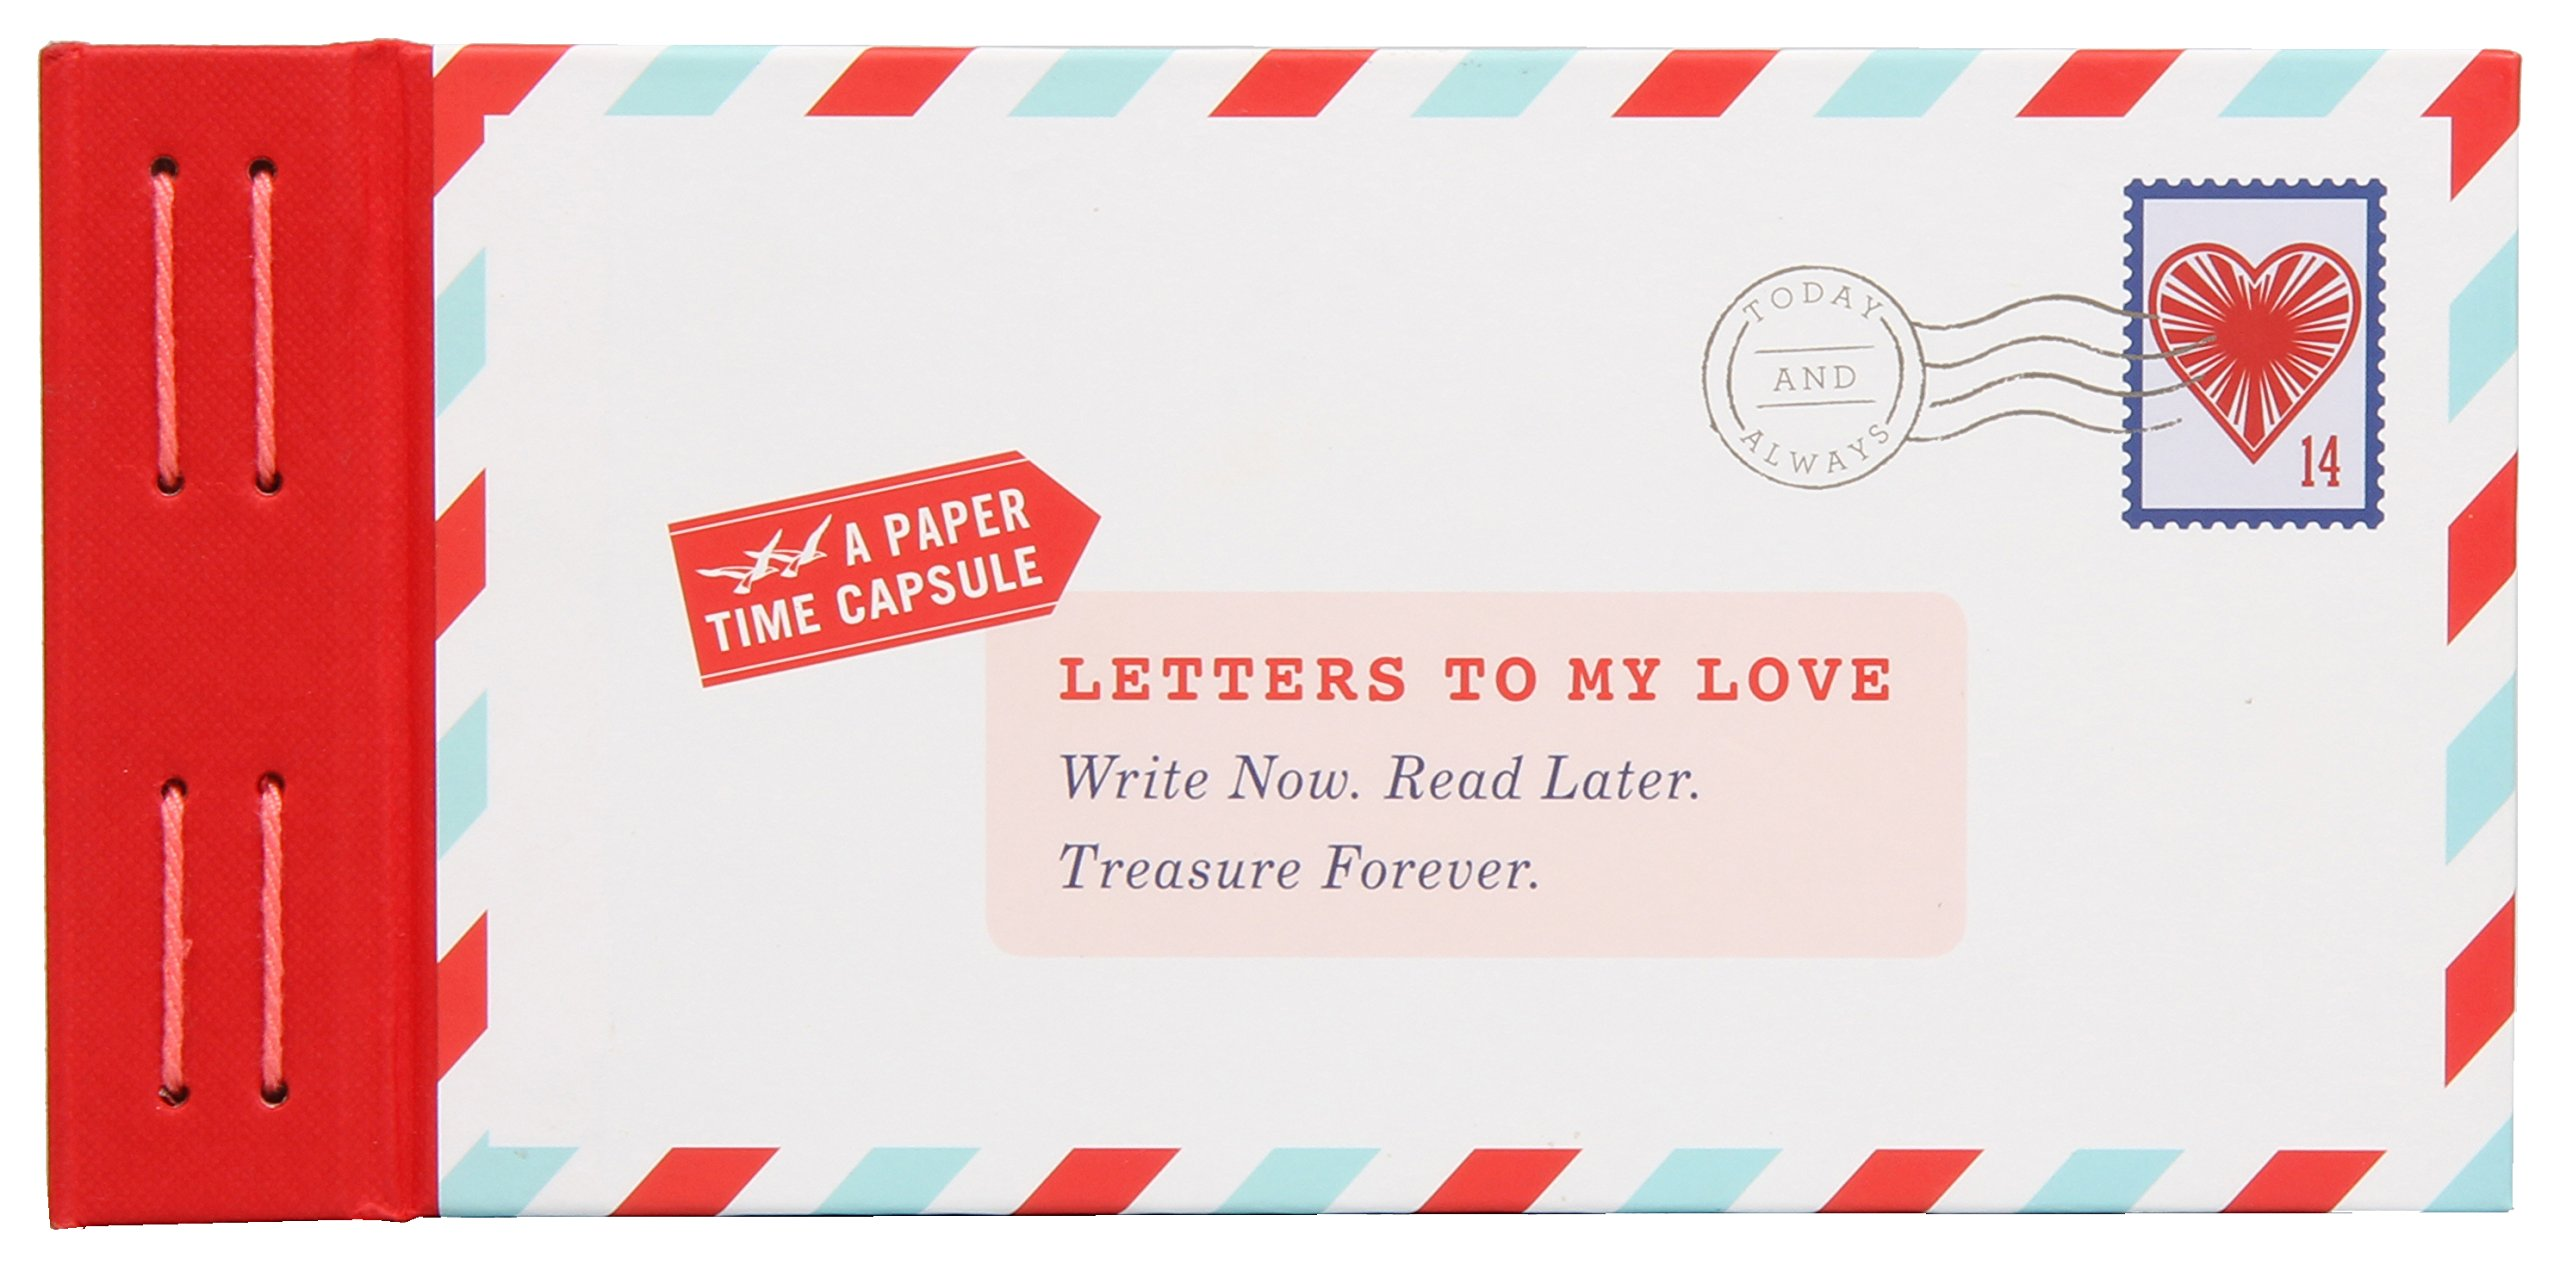 Letters to my love write now read later treasure forever lea letters to my love write now read later treasure forever lea redmond 9781452142678 amazon books aljukfo Image collections